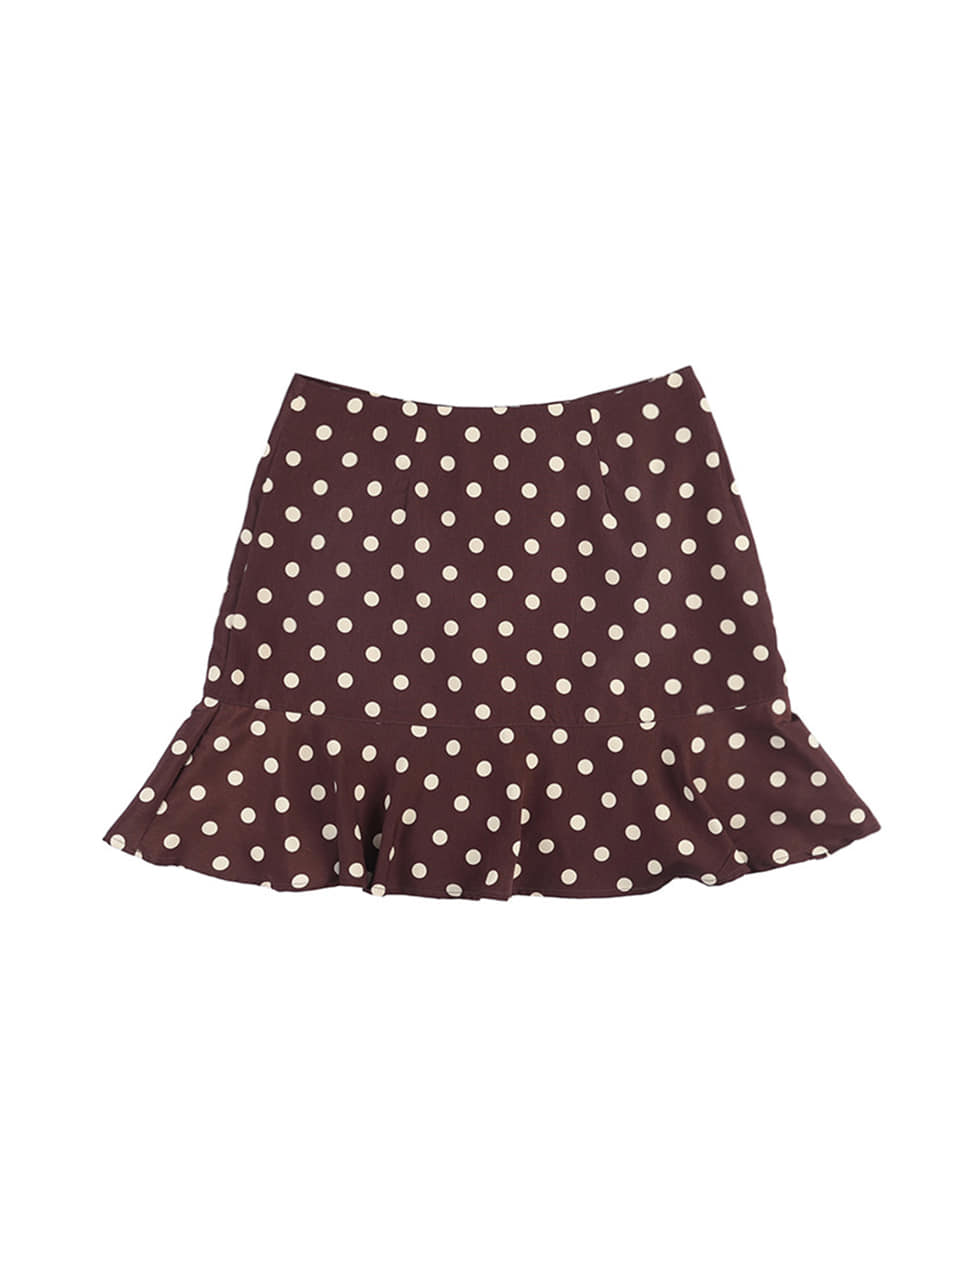 mgmg dot ruffle skirt_brown